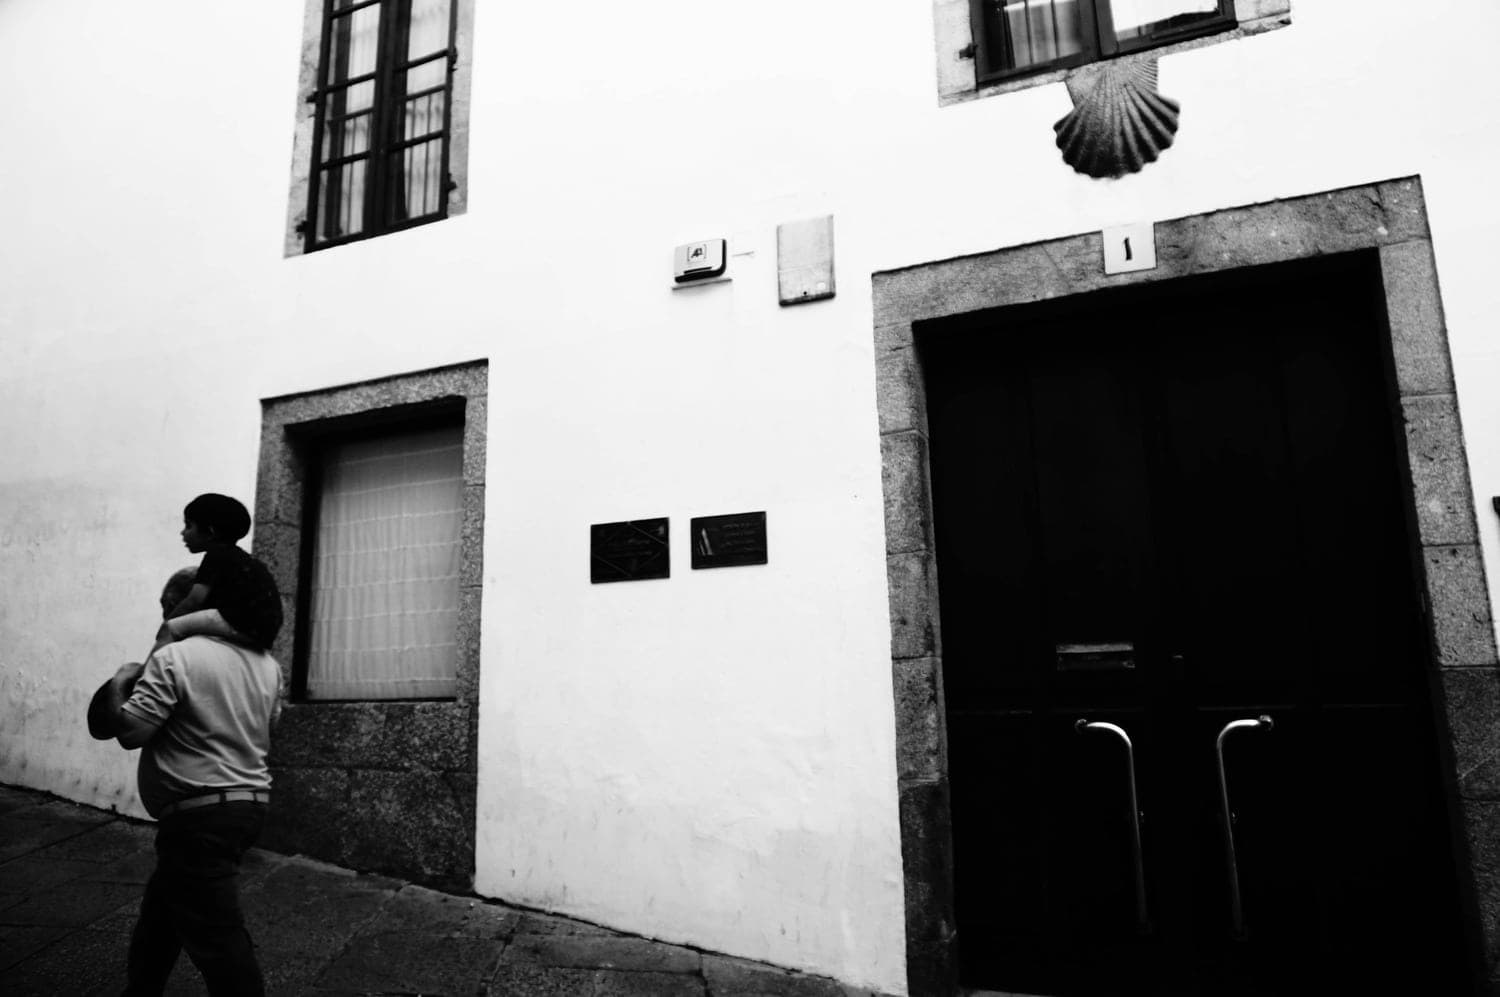 portugal, fog, brouillard, vent, wind, photographie, art, street photography, photographie de rue, blakc and white